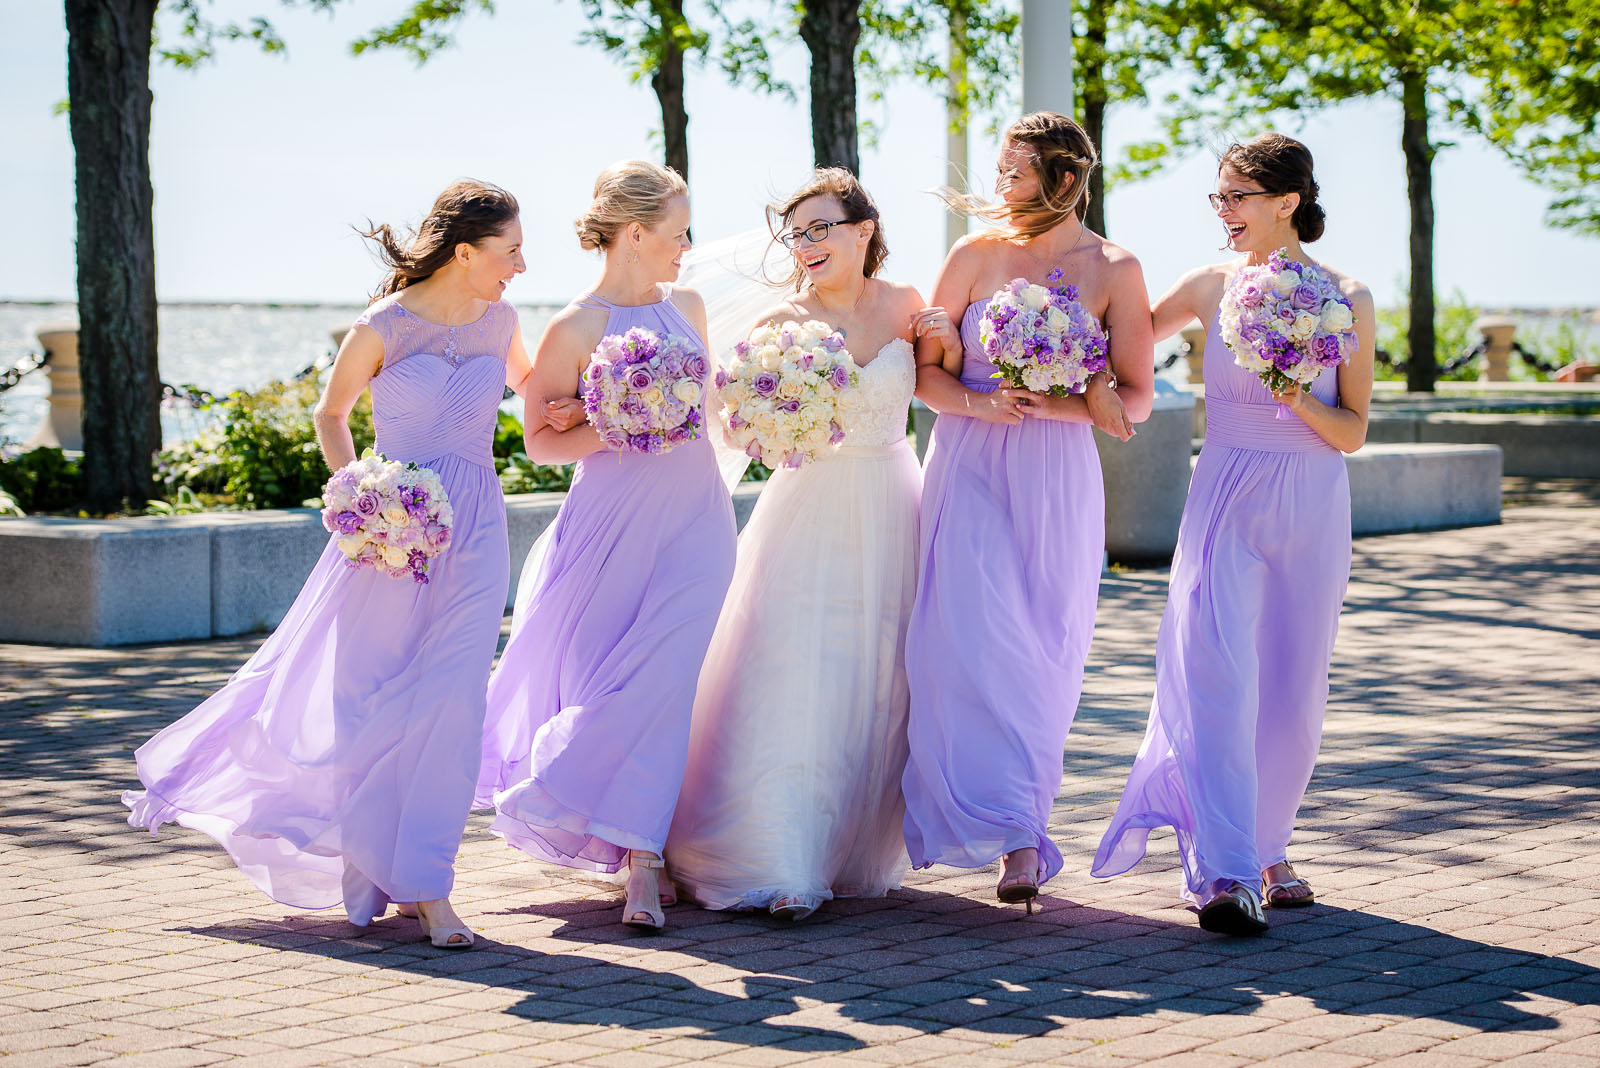 Eric_and_Christy_Photography_Blog_Julie_Adam_Wedding-20